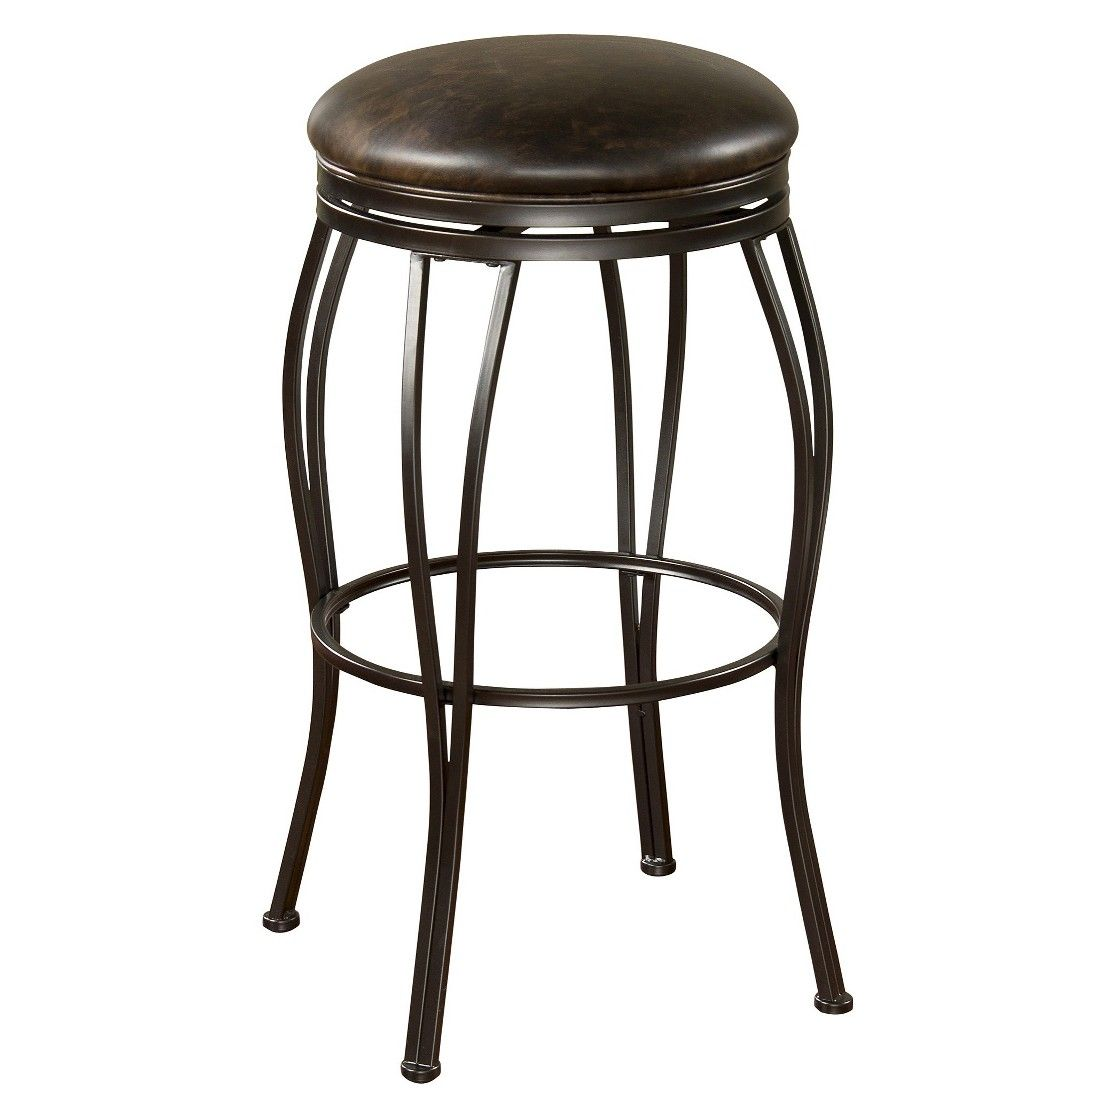 Perfect AHB Romano Swivel Counter Stool   Coco With Tobacco Bonded Leather   A  Blend Of Casual And Elegant, The AHB 24 In. Romano Swivel Counter Stool    Coco With ...